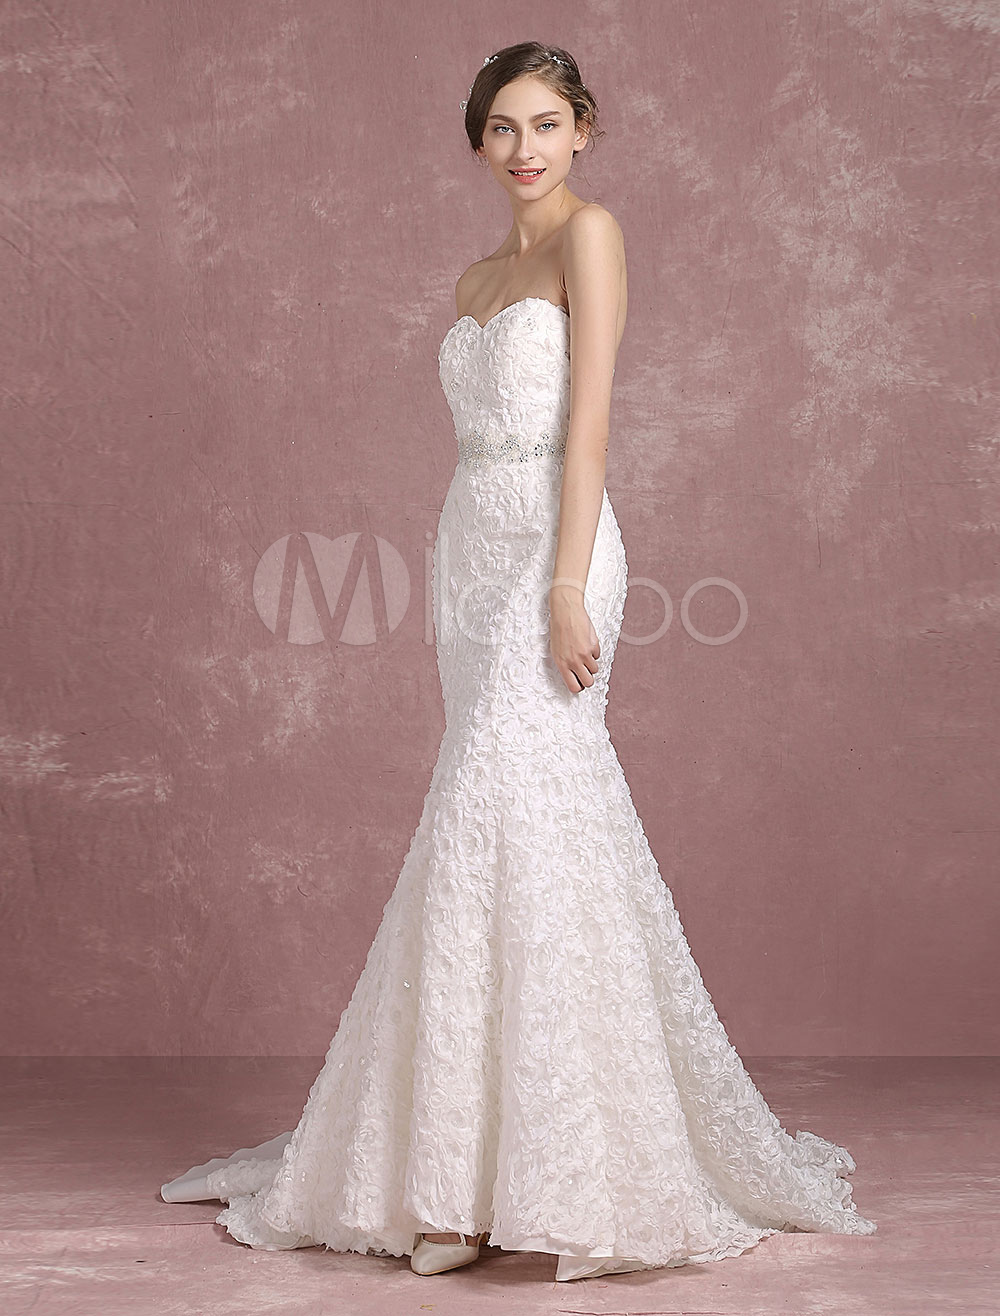 Buy Summer Wedding Dresses 2018 Mermaid Boho Backless Bridal Gown Sweetheart Strapless Lace Beading Flower Bridal Dress With Cathedral Train for $281.69 in Milanoo store